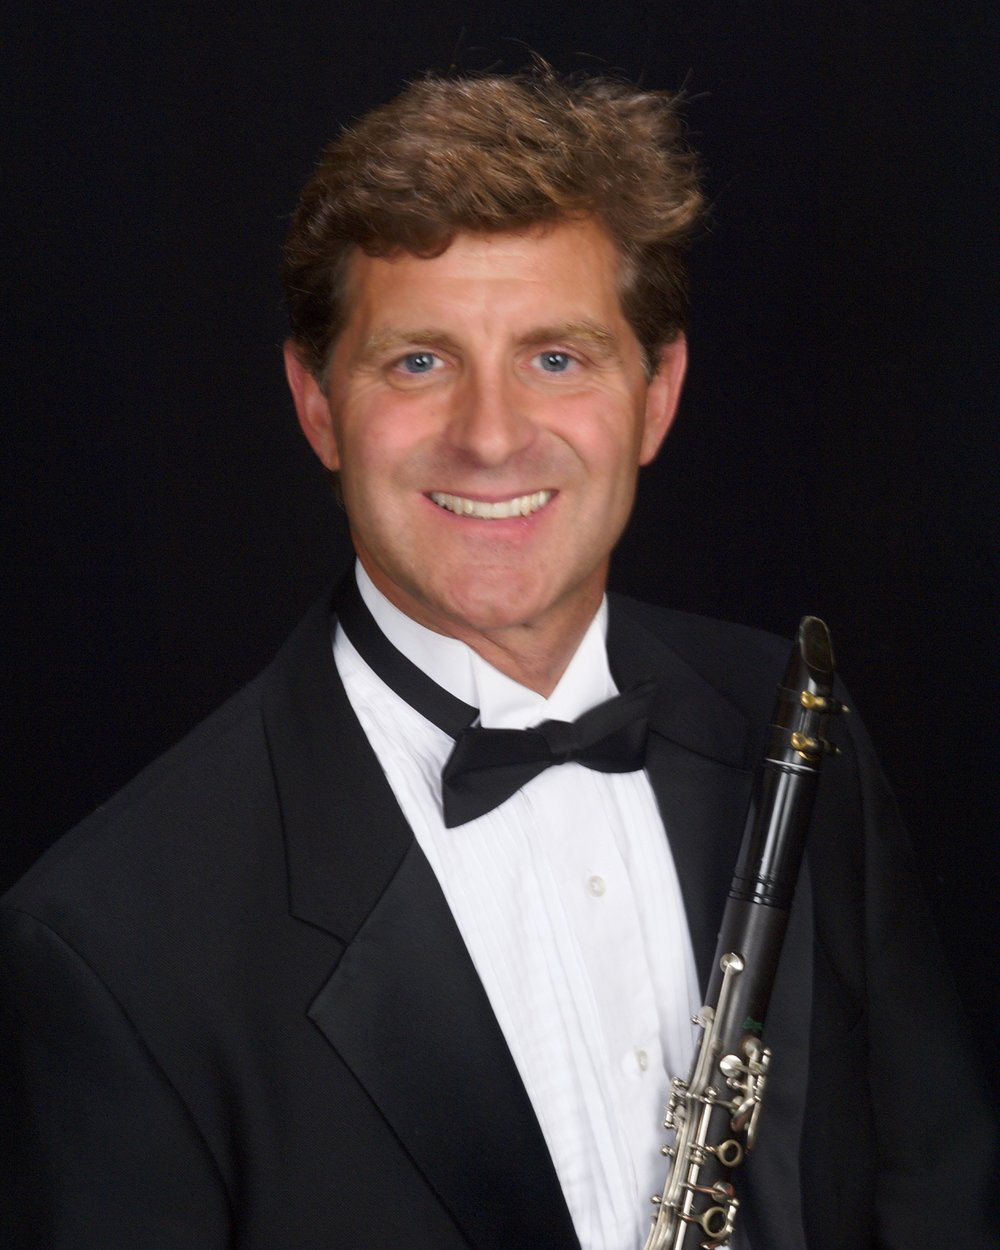 Scott wrightband director - Clarinetist Scott Wright is the Professor of Clarinet at the University of Kentucky, a position he has held since 2002. He is also a member of the esteemed McCracken Faculty Wind Quintet, and Chair of the Winds—Percussion—Jazz Division in the School of Music. In a career spanning nearly three decades, Dr. Wright has performed and taught in a wide variety of settings including the public schools, universities, chamber and orchestral ensembles, and as a soloist. He has been featured as both a conductor and clarinetist the conferences of the International Clarinet Association, National Band Association, College Band Directors National Association, the International Double Reed Society, the National Collegiate Choral Organization, the Midwest Clinic, and the American Choral Directors Association. Since 1997, he has appeared frequently with pianist Linda Halloin (Duo Pegasus) as a guest artist, and has presented numerous concerts and masterclasses at colleges and universities throughout the country as well as in Europe, Canada, and Asia.Dr. Wright keeps busy as a conductor and soloist with high school and middle school bands and serves as clarinet instructor and band director at music camps and festivals in Wisconsin, Oregon, and Kentucky, as well as a clarinet instructor and consultant for the American Band College-Sam Houston State University. Dr. Wright holds degrees from the University of Michigan and Arizona State University, and he is a Selmer Performing Artist.